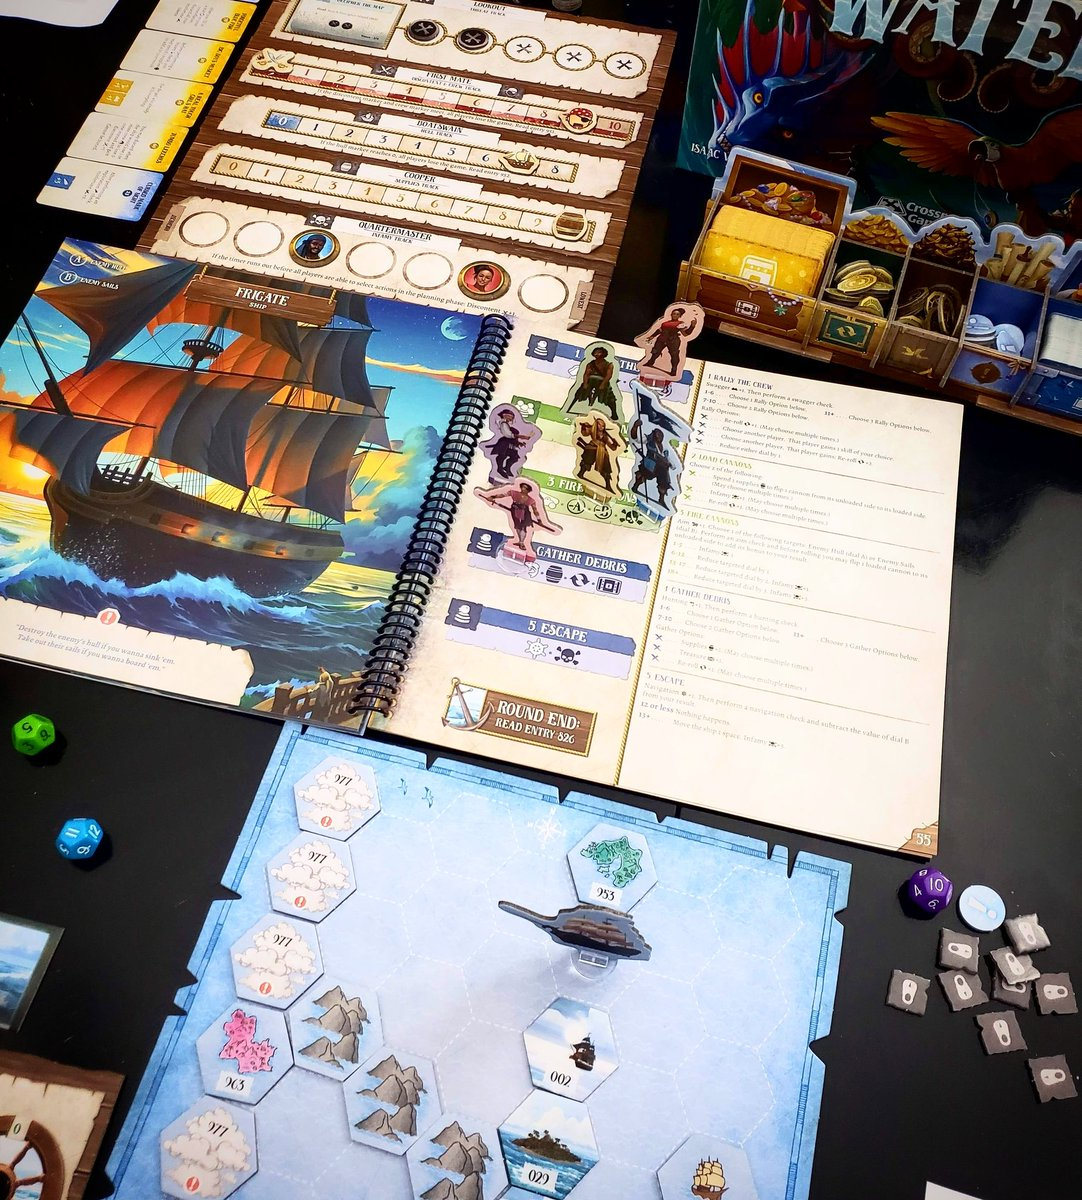 Epic game of Forgotten Waters! Really innovative new game from @PlaidHatGames with the added awesomeness of being a pirate game! Amazing artwork to top it off. Check it out! (I played the 2p variant) - Steph @BoardGamerSteph #bgg #plaidhatgames #newgames #forgottenwaterspic.twitter.com/zi4dOGwwd5